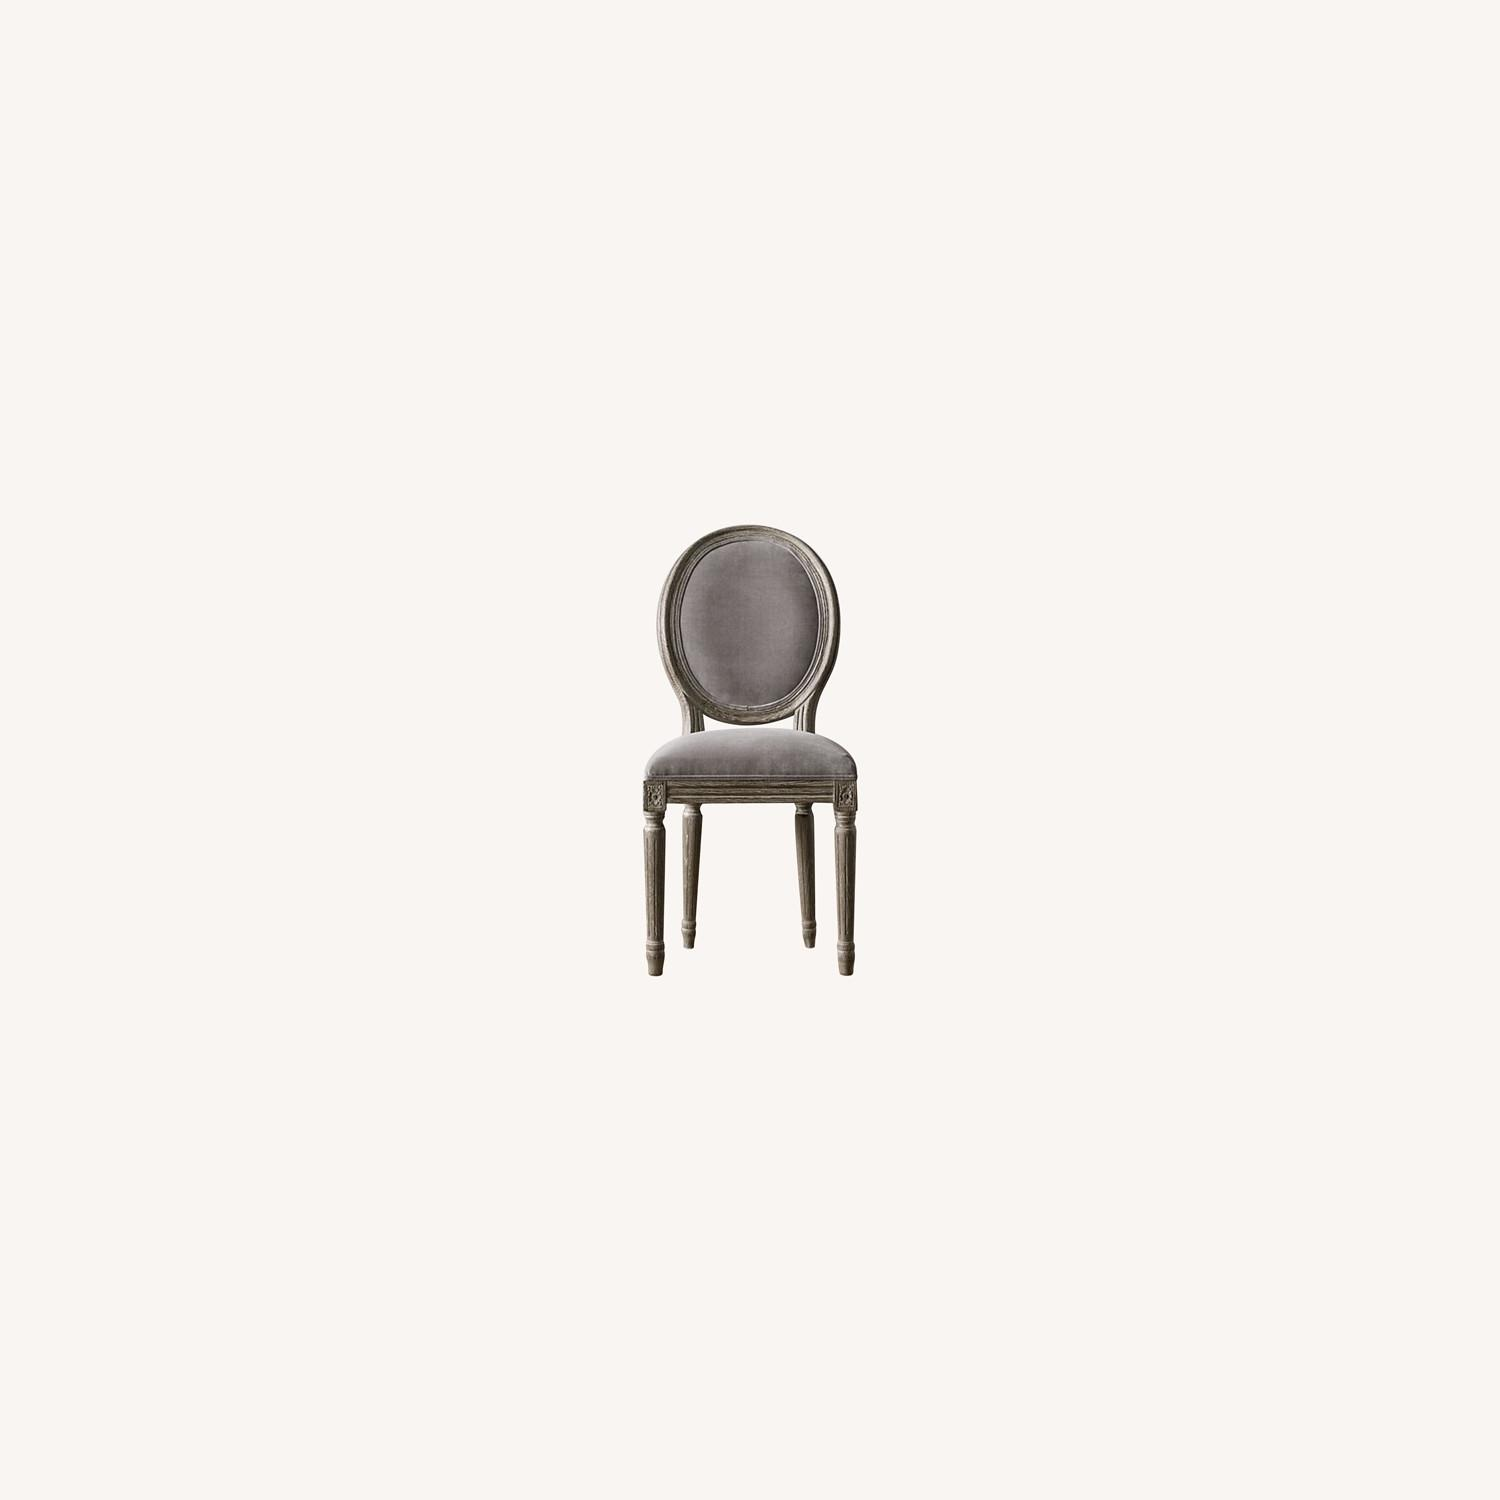 Restoration Hardware Mini Vintage French Upholstered Chair - image-0